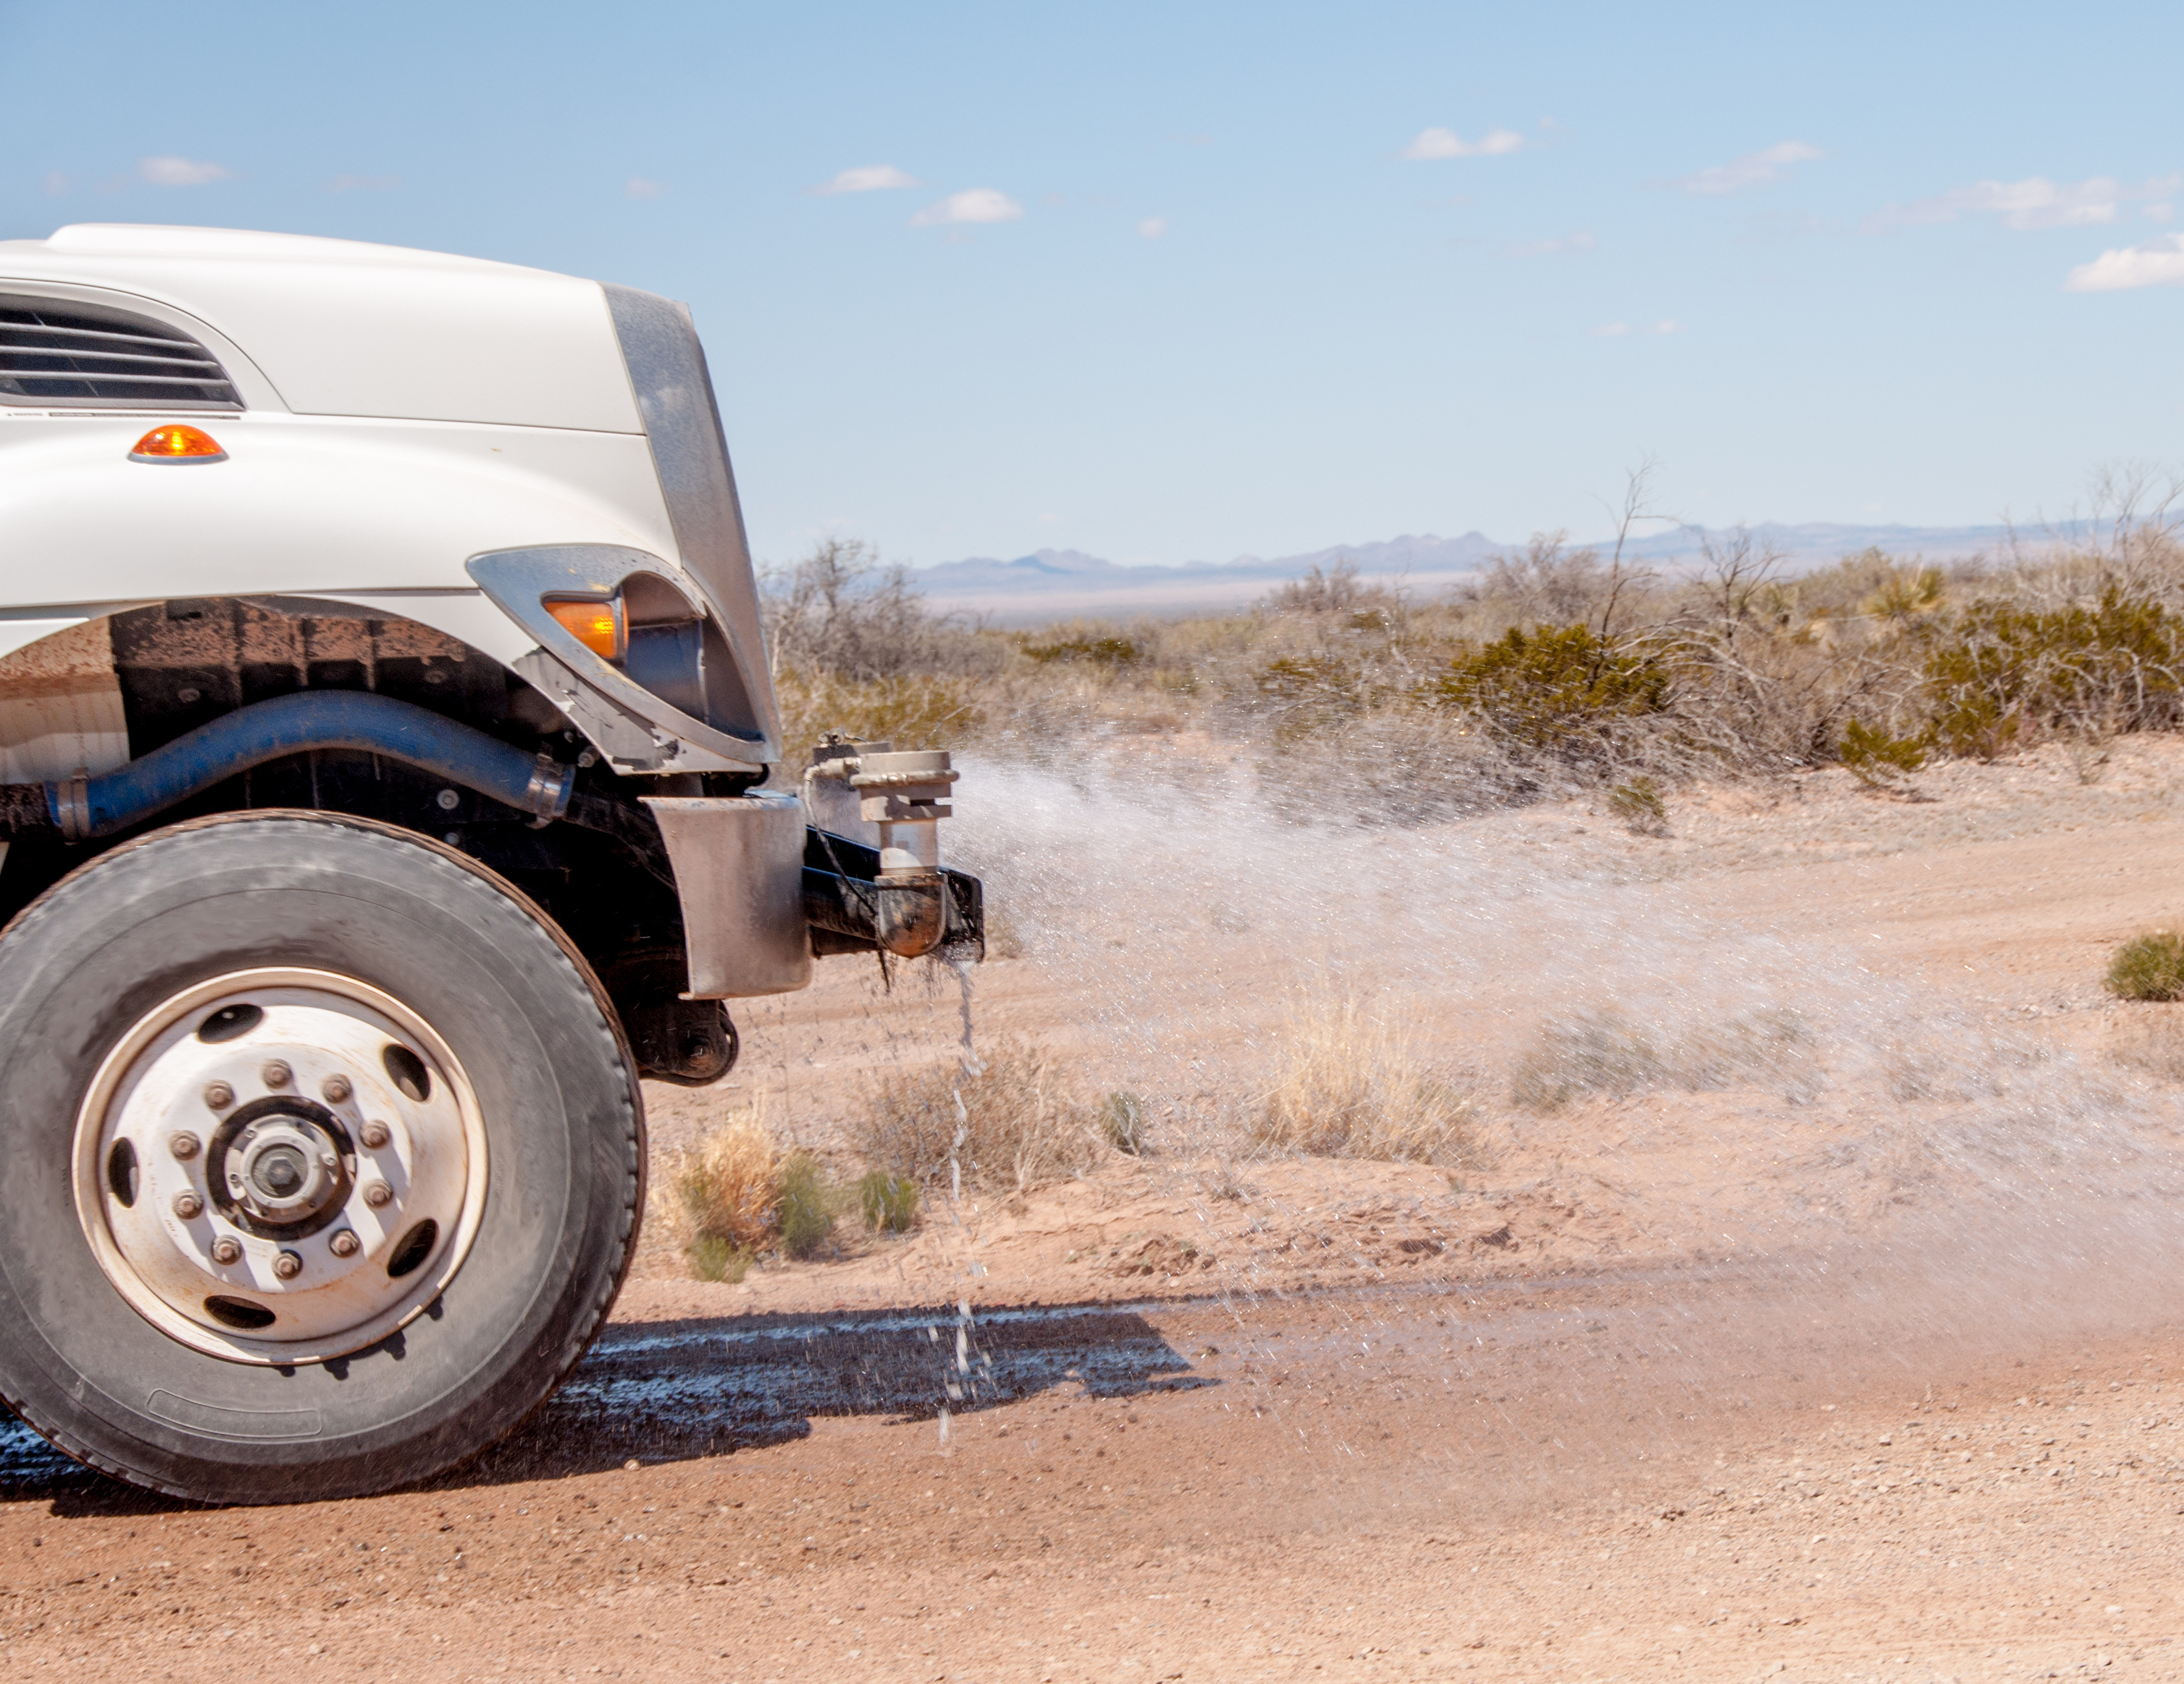 Water-Truck-Controls-Dust-on-Dirt-Road-528965068_3359x2590